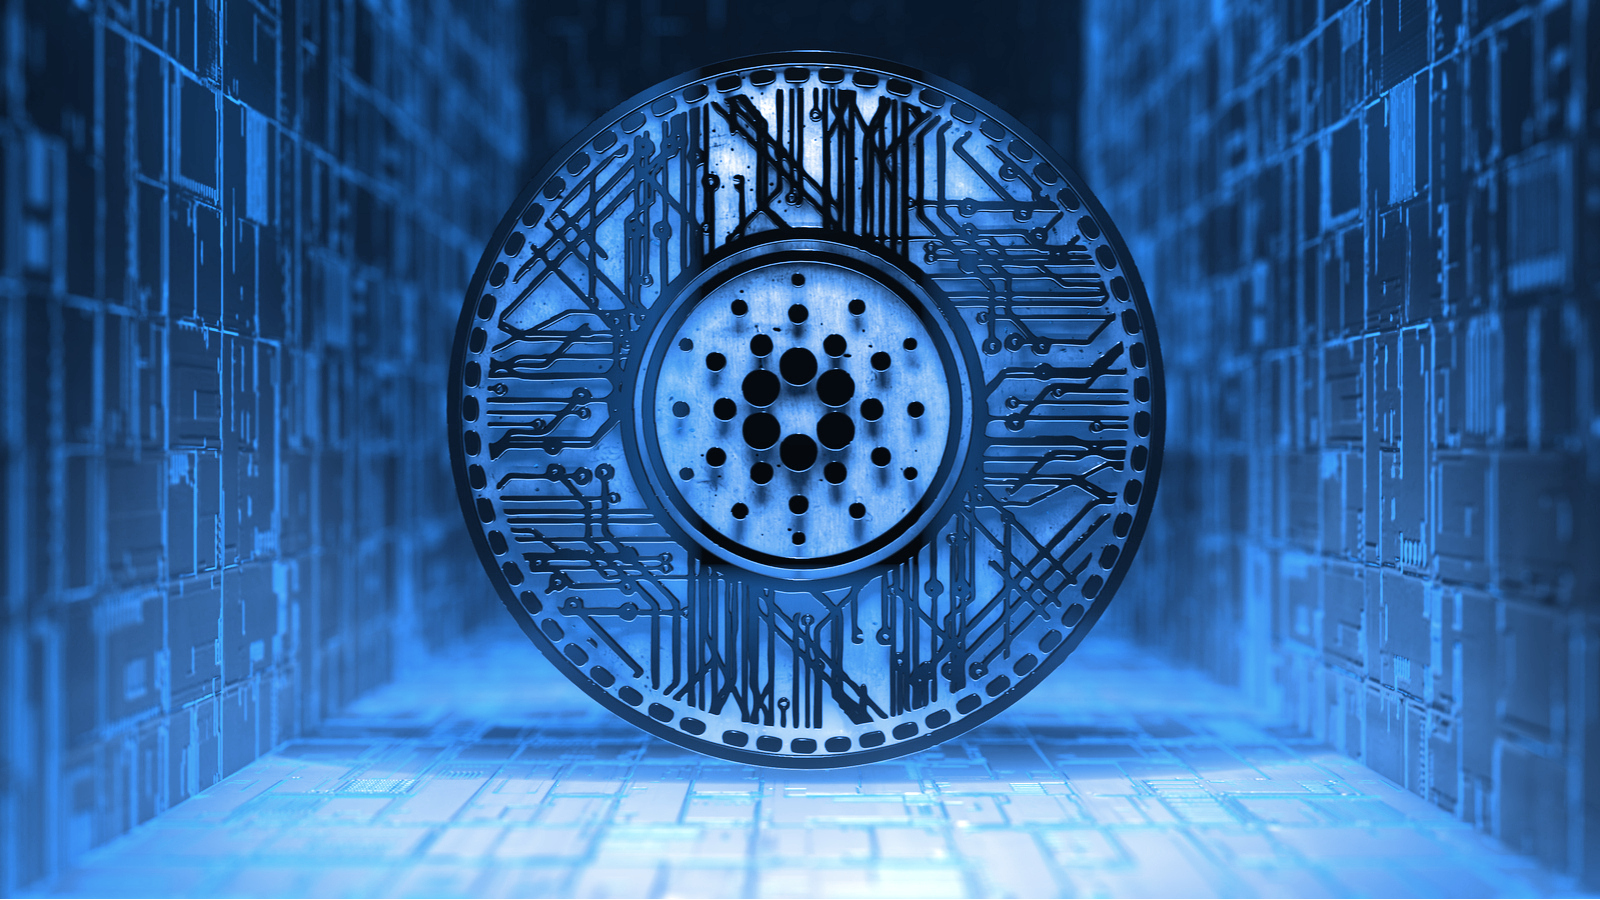 Cardano to Launch Smart Contracts Today—But Where Are the dApps? - Decrypt